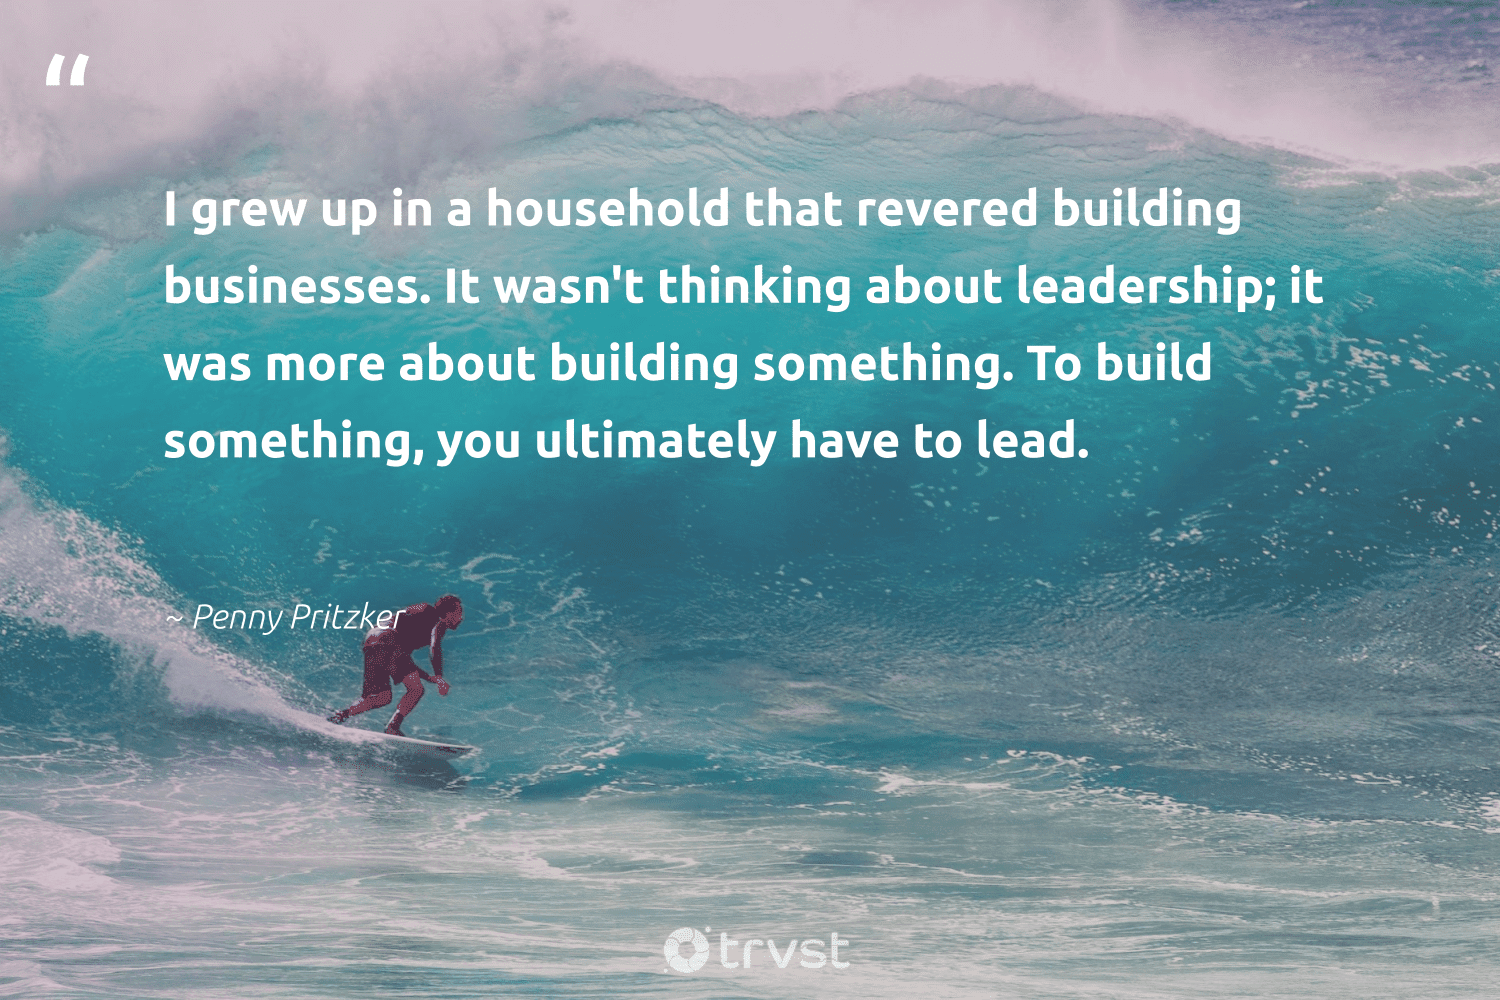 """""""I grew up in a household that revered building businesses. It wasn't thinking about leadership; it was more about building something. To build something, you ultimately have to lead.""""  - Penny Pritzker #trvst #quotes #futureofwork #bethechange #nevergiveup #planetearthfirst #begreat #socialchange #softskills #changetheworld #takeaction #beinspired"""